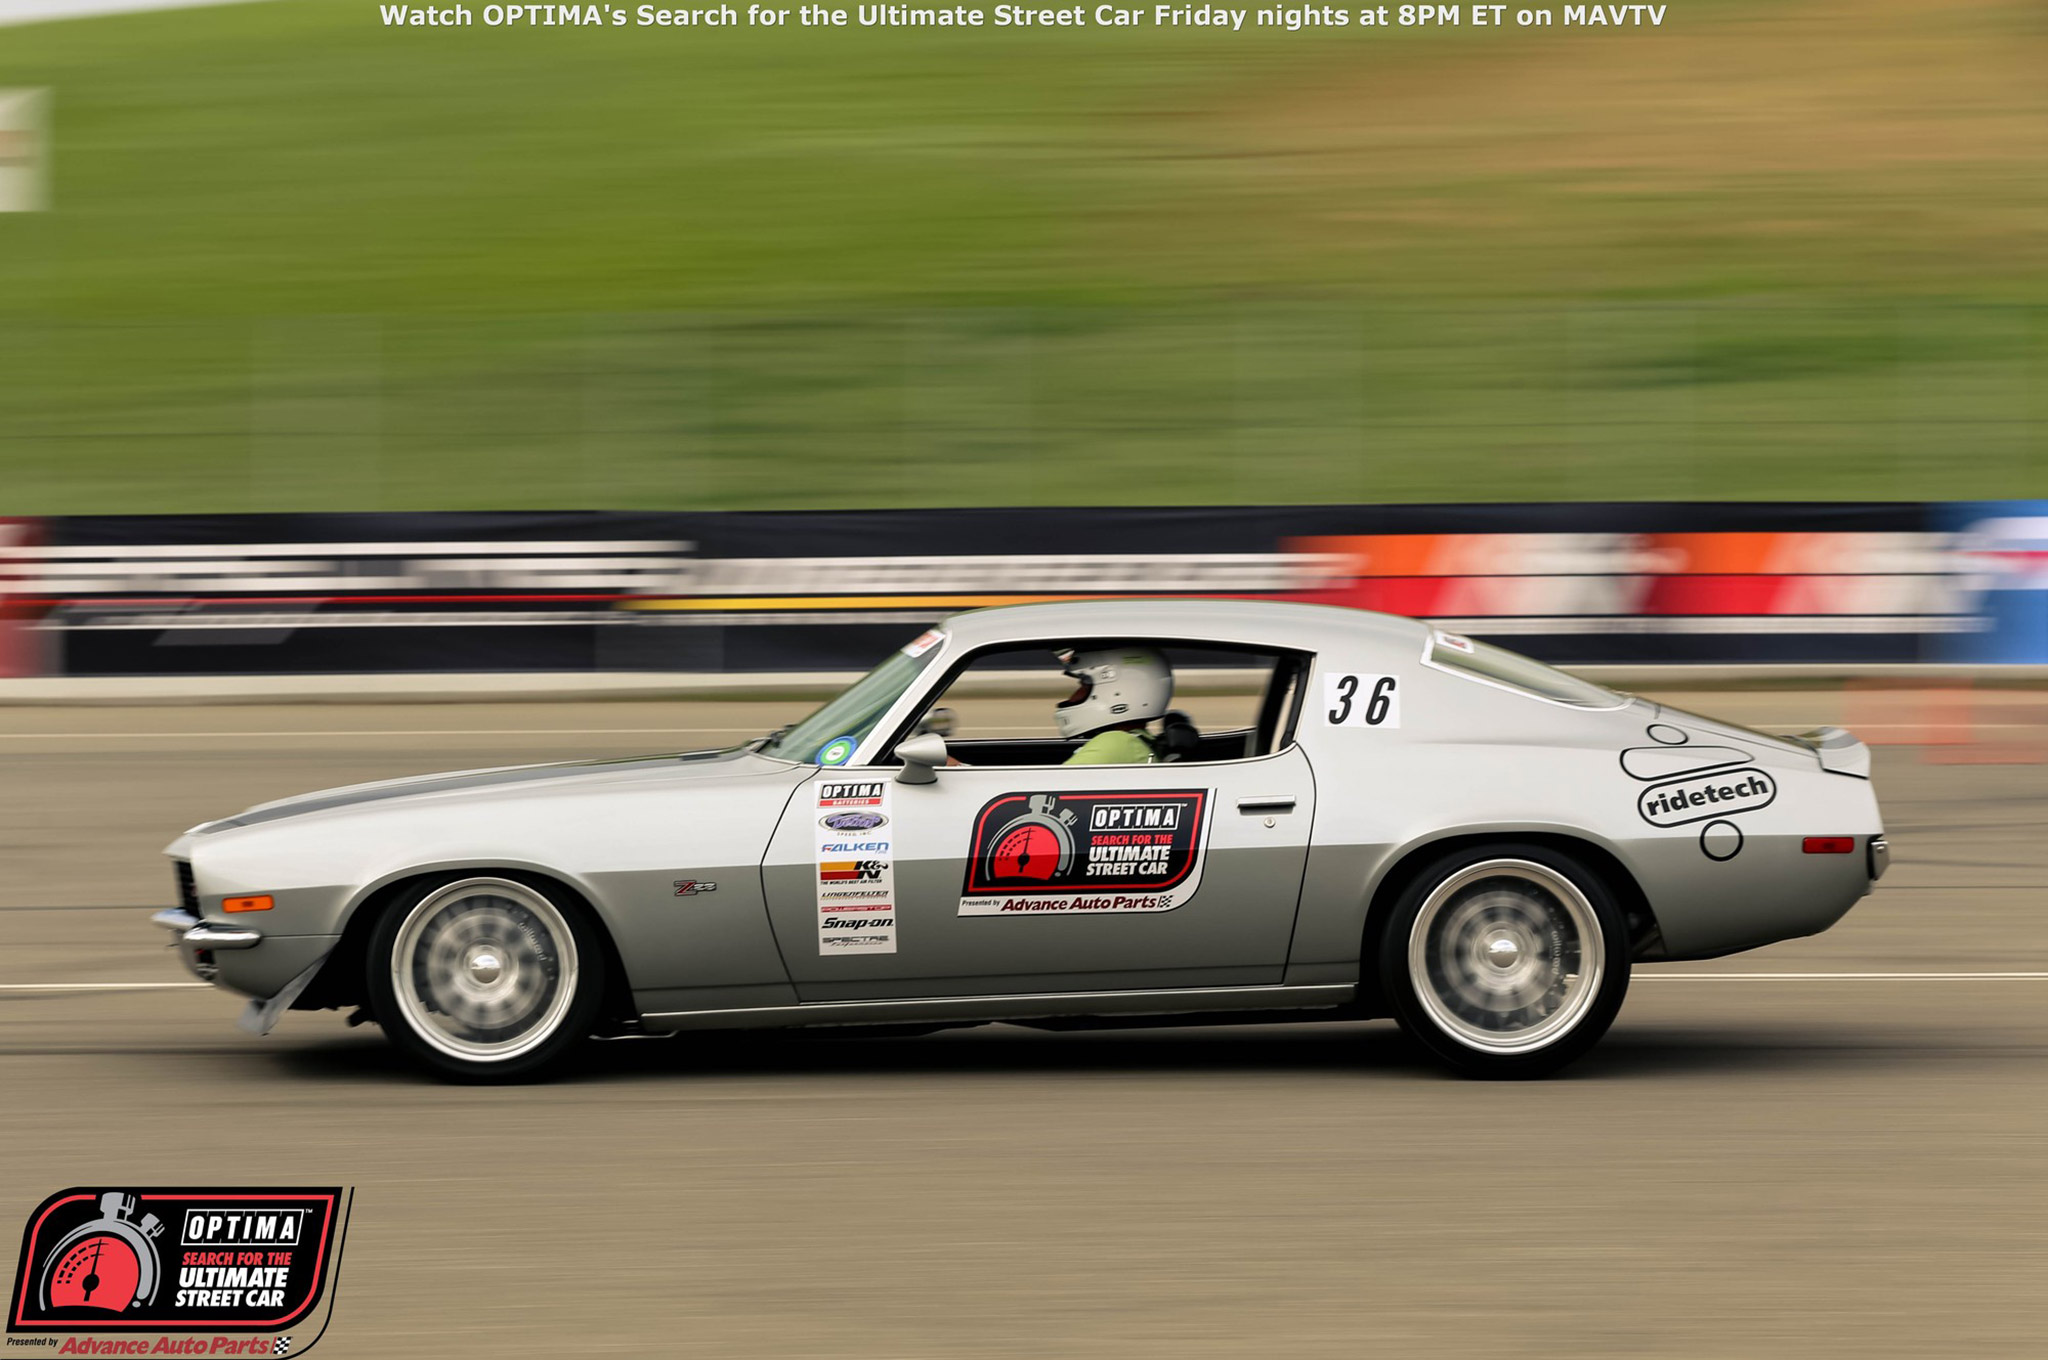 Bryan Battaglini's 1970 Camaro finished 18th in the GTV class, including an impressive Third Place overall finish in the Lingenfelter Design & Engineering Challenge.